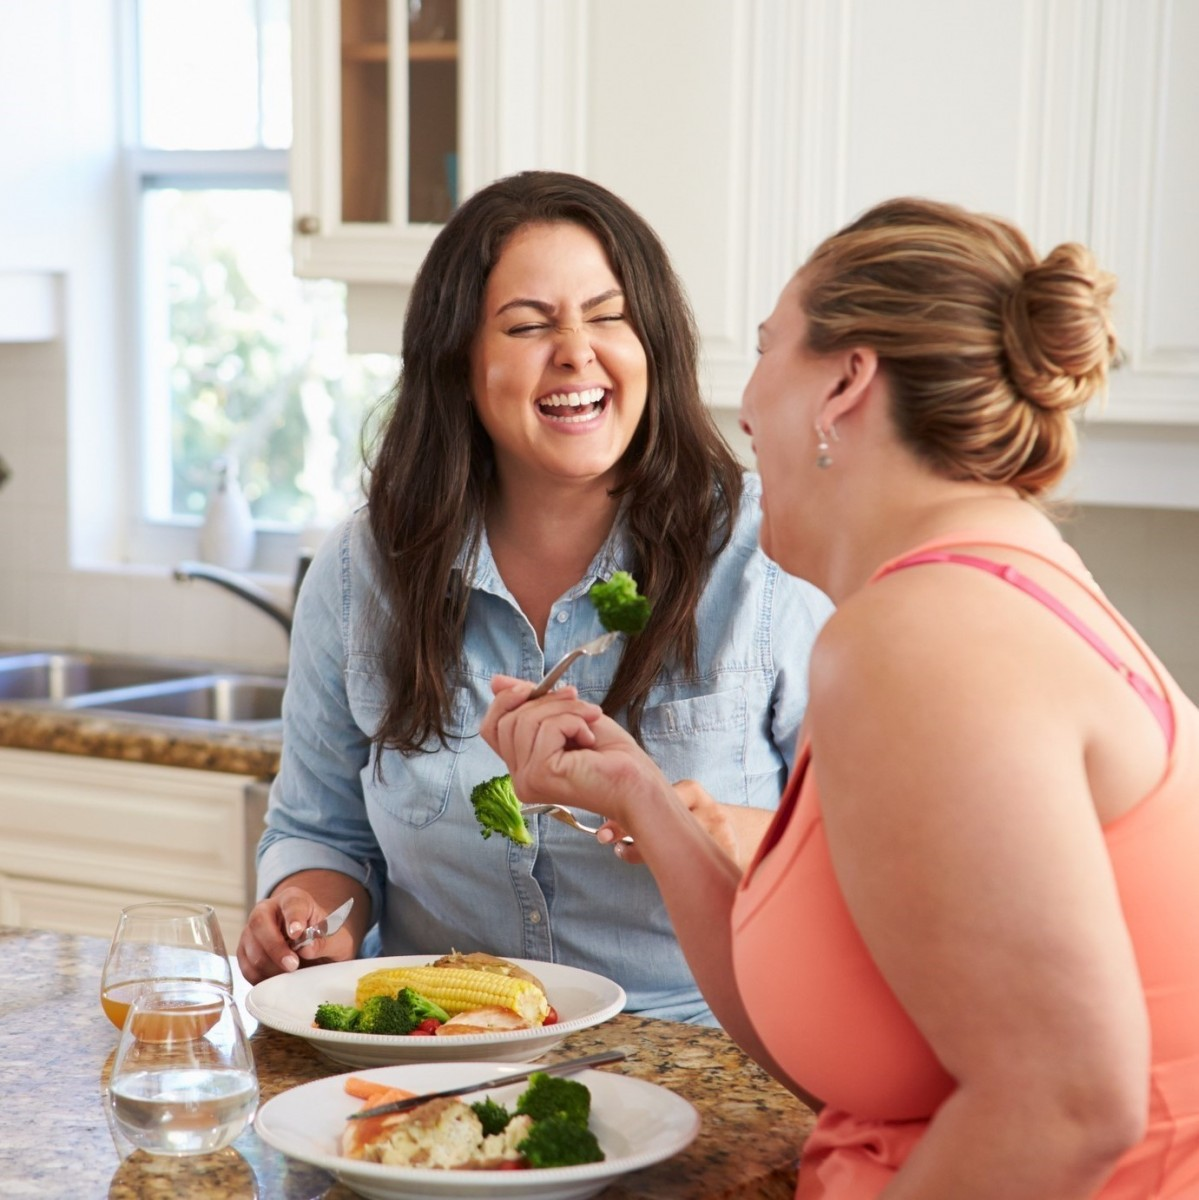 Binge eating help, intuitive eating & body image